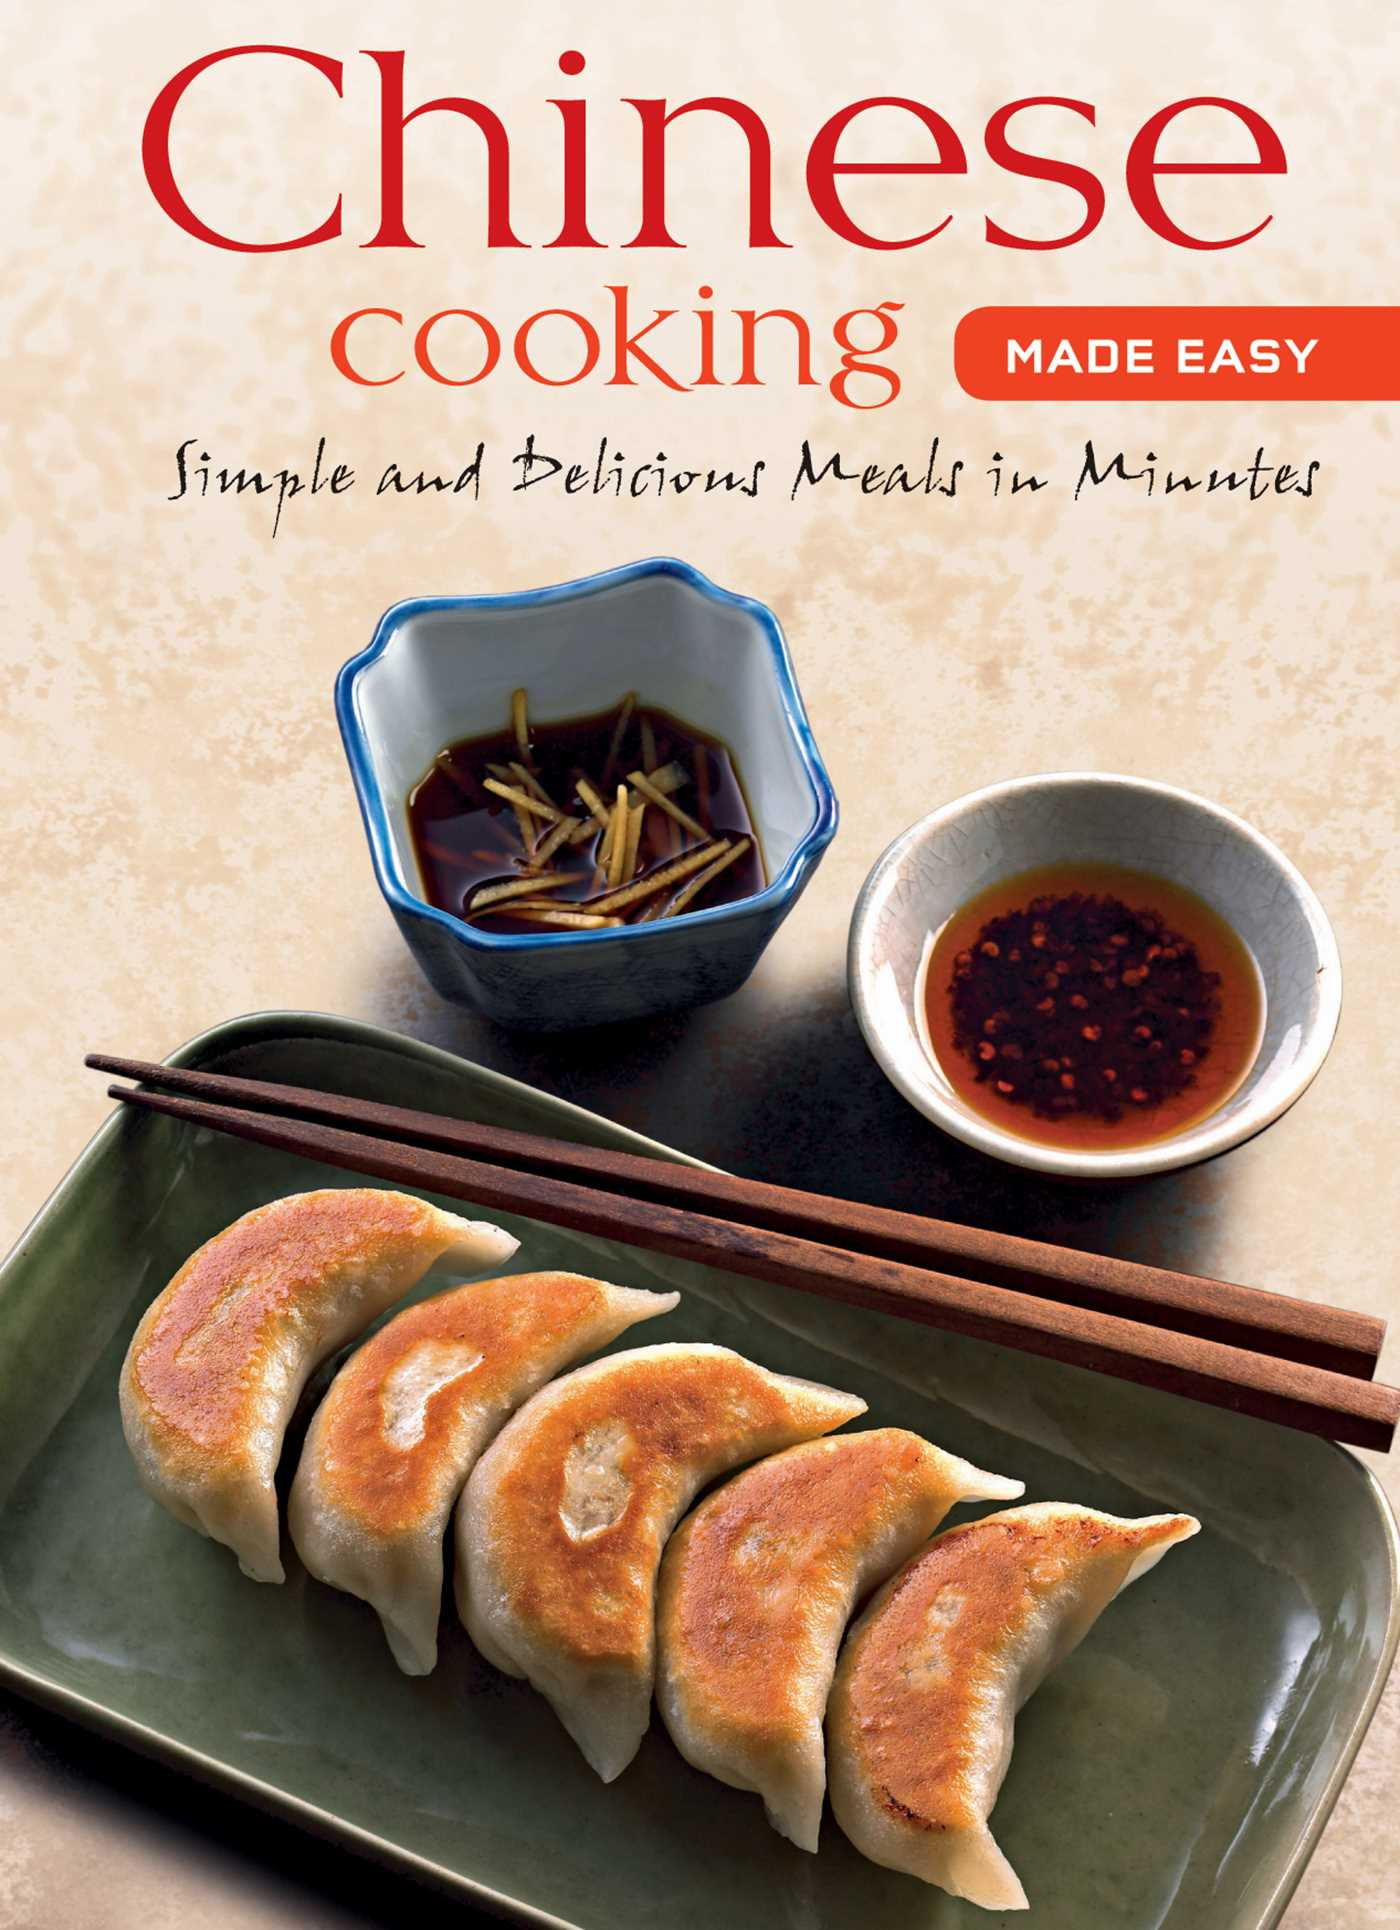 Chinese-cooking-made-easy-9780804840460_hr